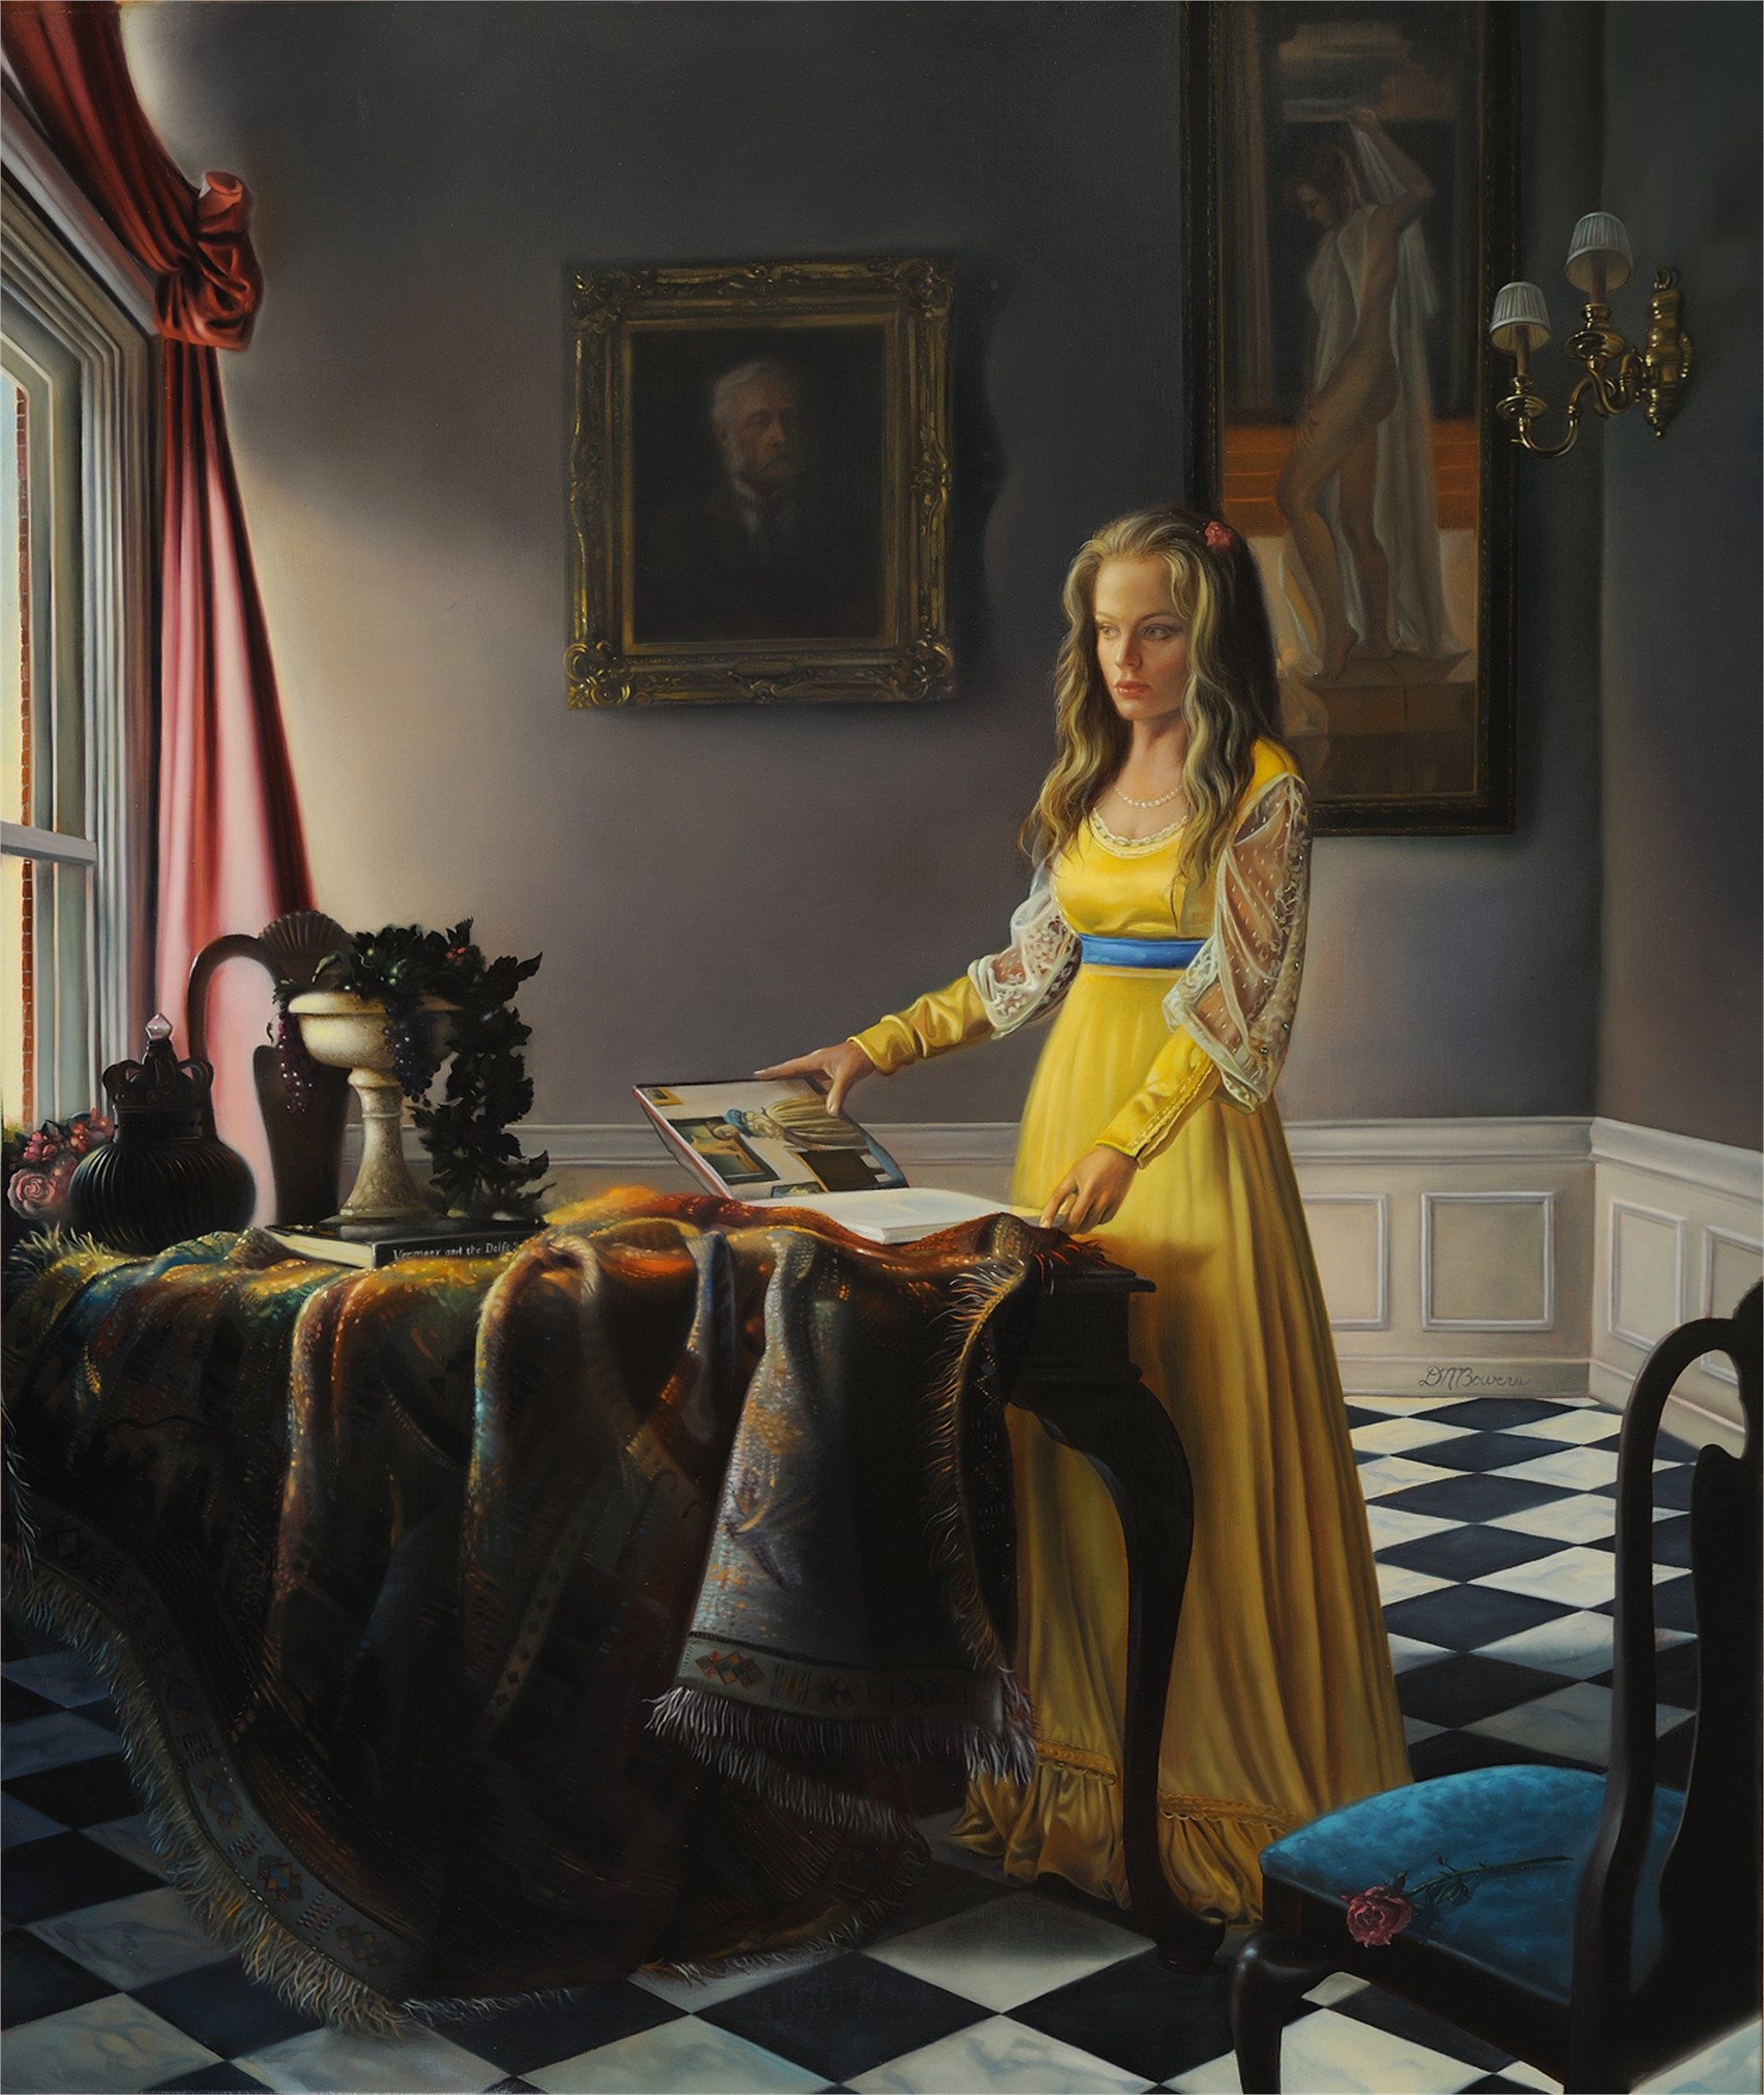 Face the Light by David Michael Bowers